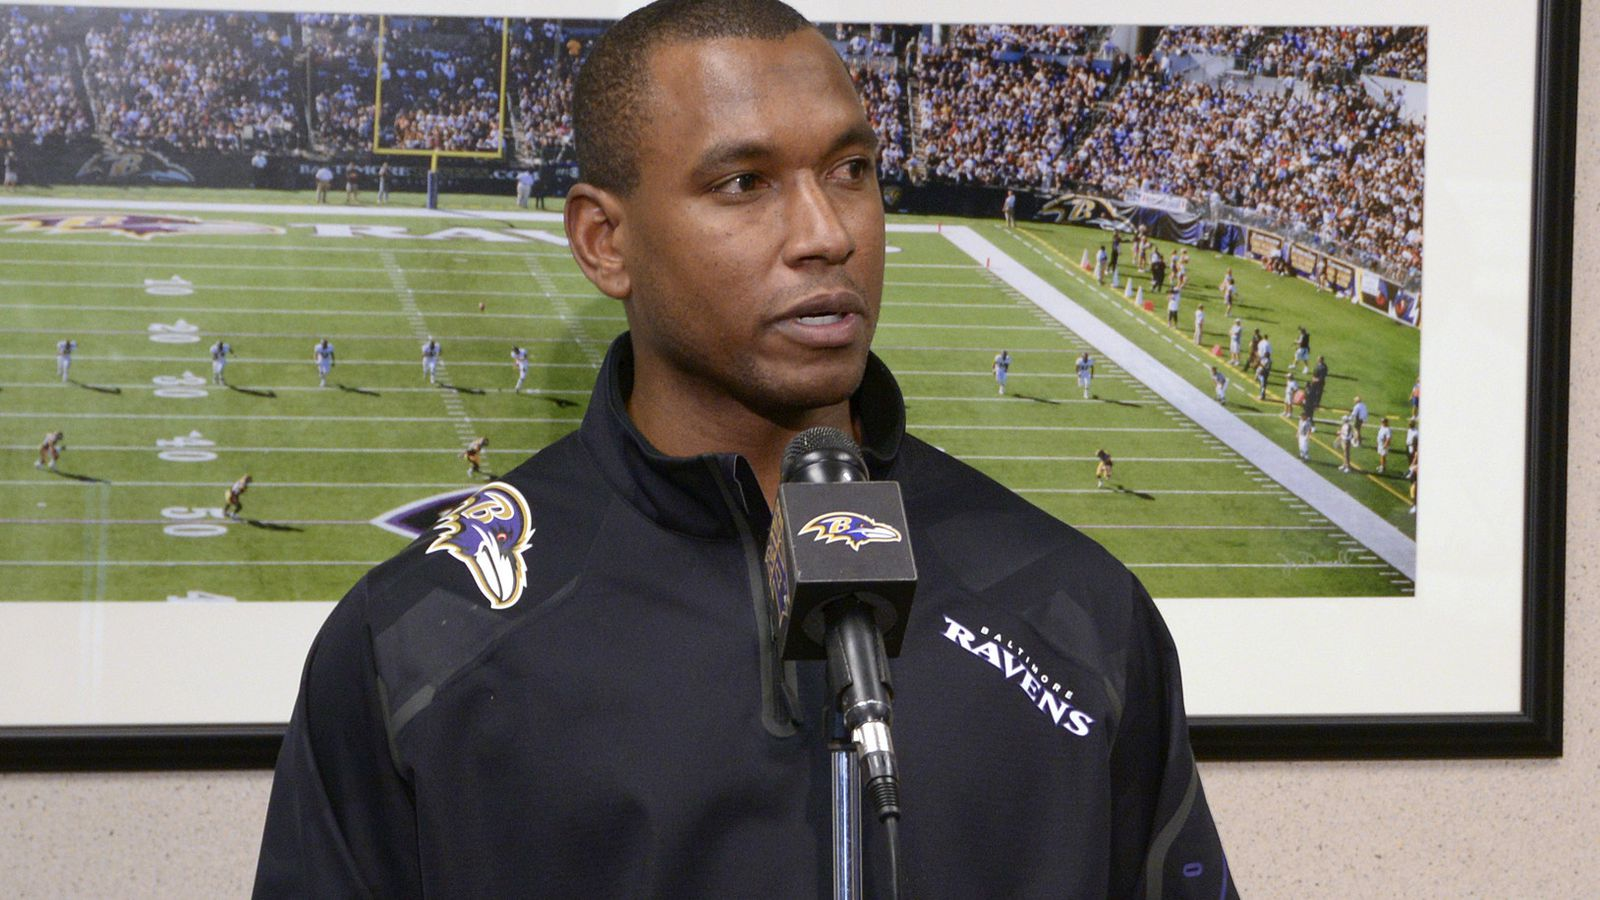 Bal-hardnosed-rookie-wr-jeremy-butler-off-to-good-start-with-ravens-20140703.0